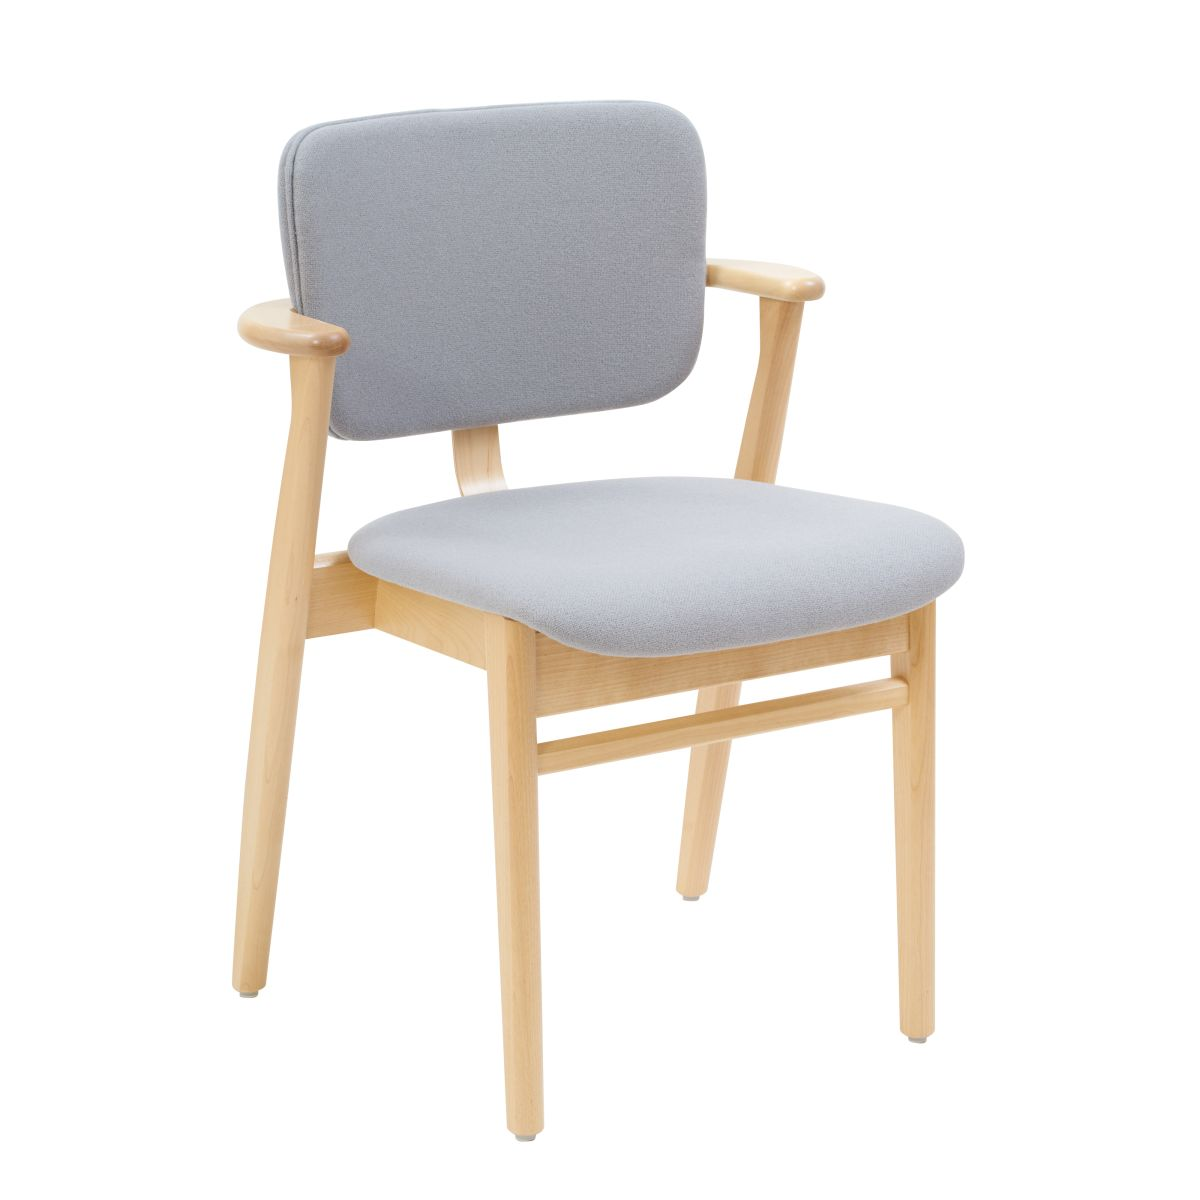 Domus-Chair-clear-laquered-birch_seat-back-fabric-grey-2627422